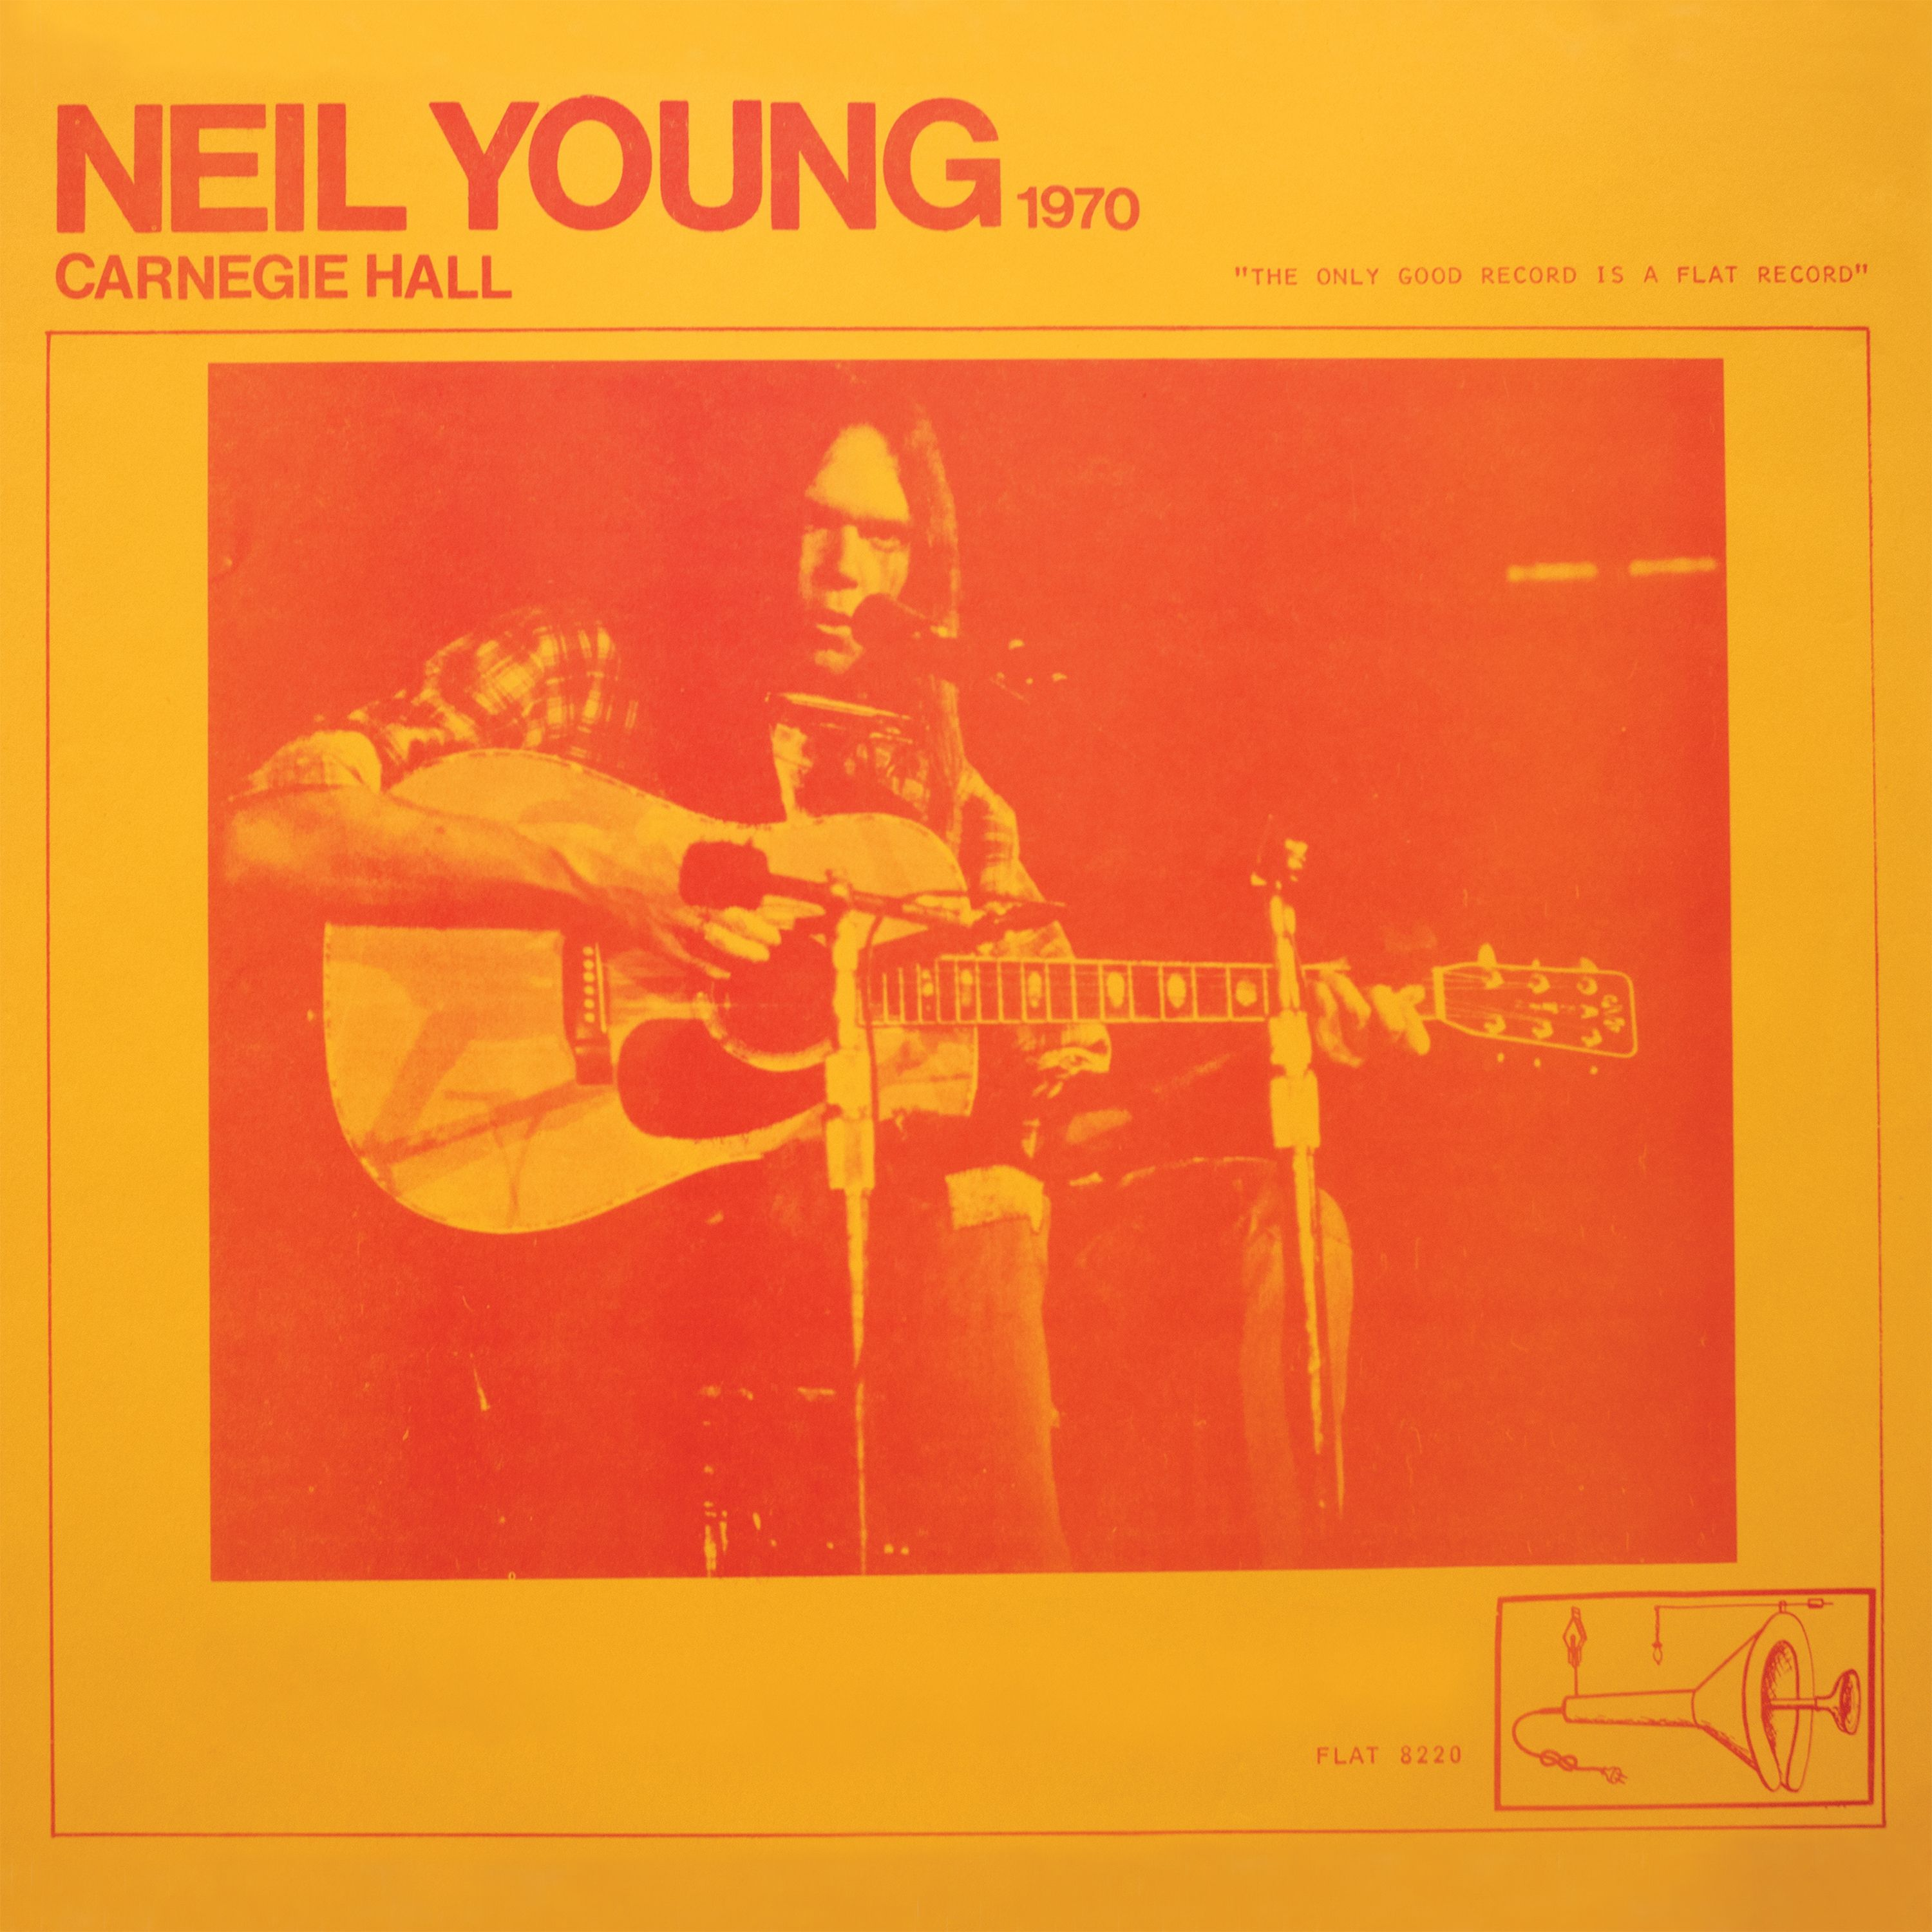 Neil Young - Carnegie Hall 1970 album cover